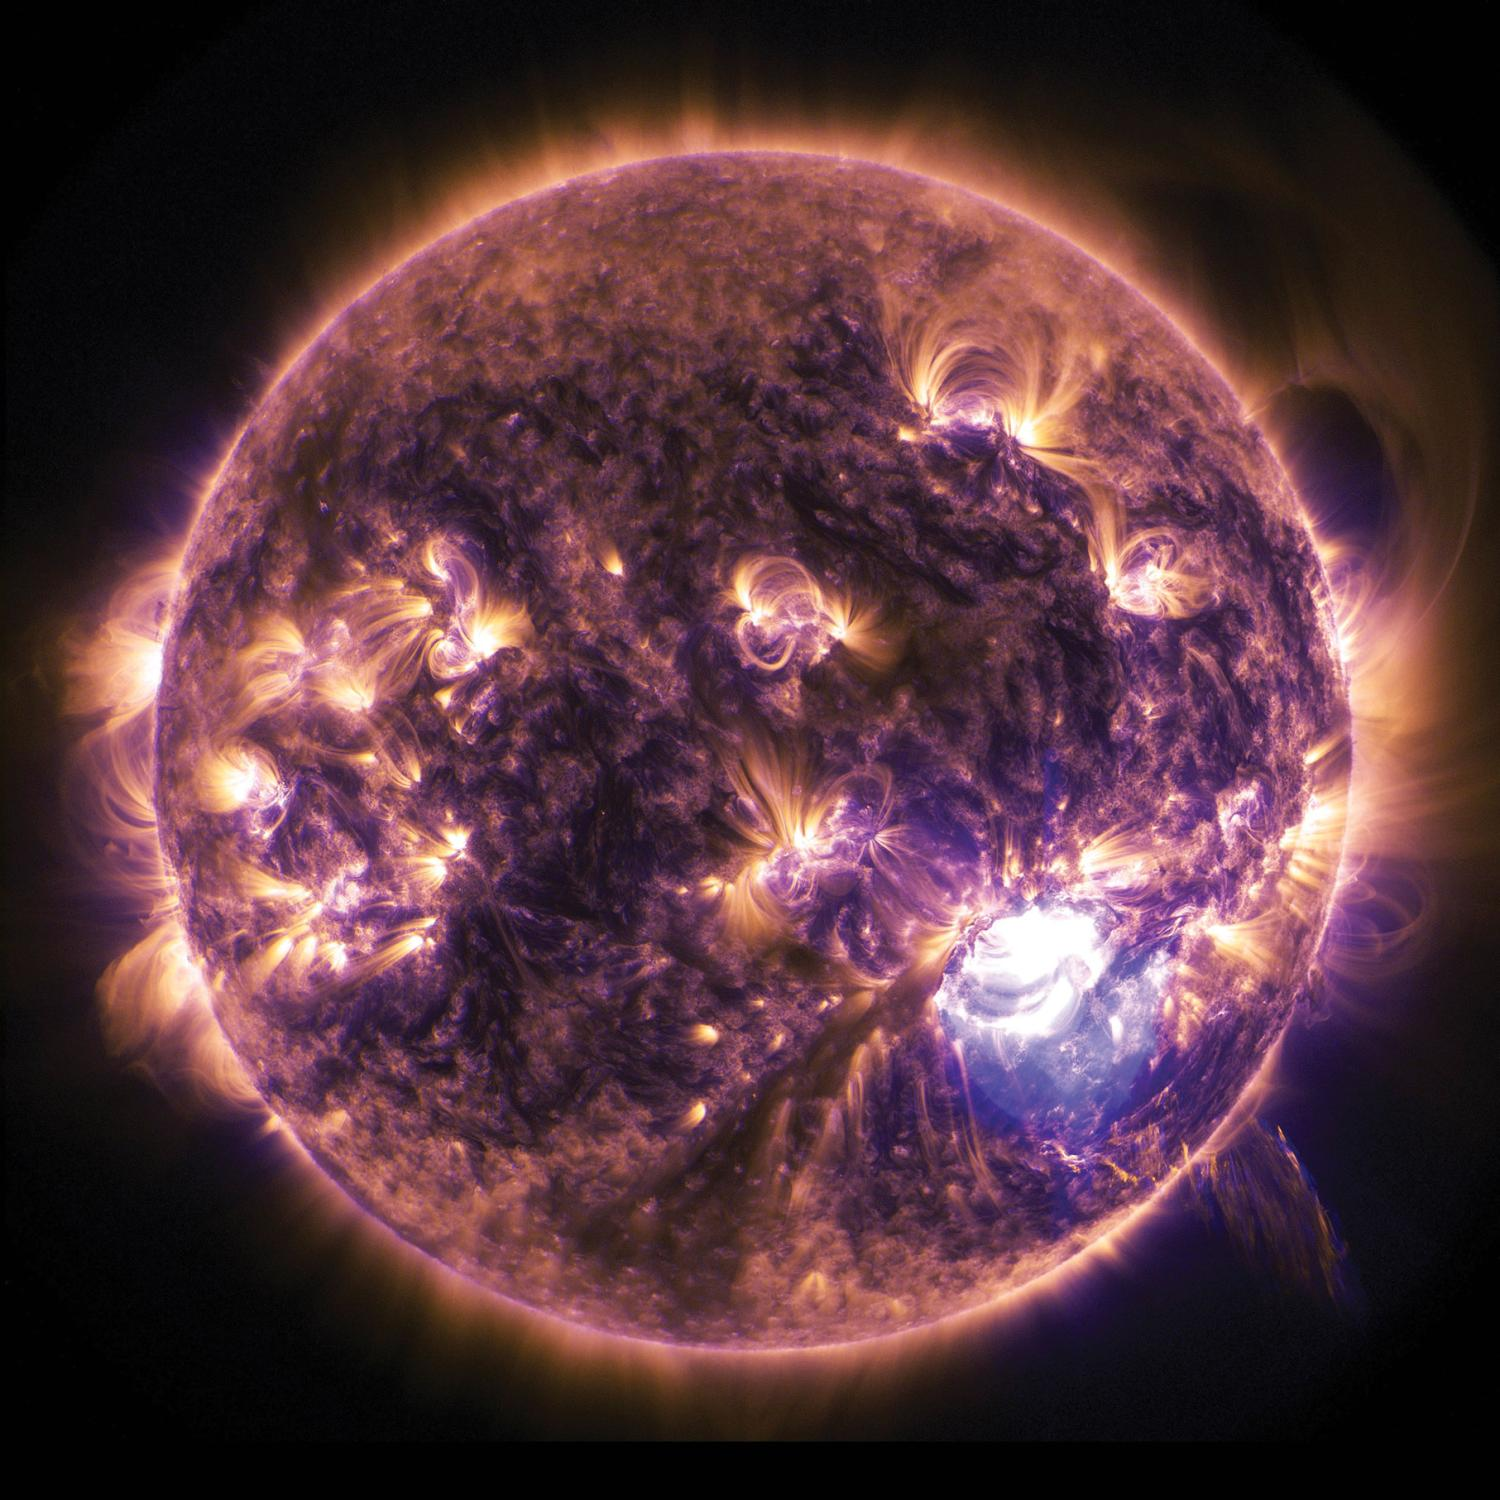 Solar images in space